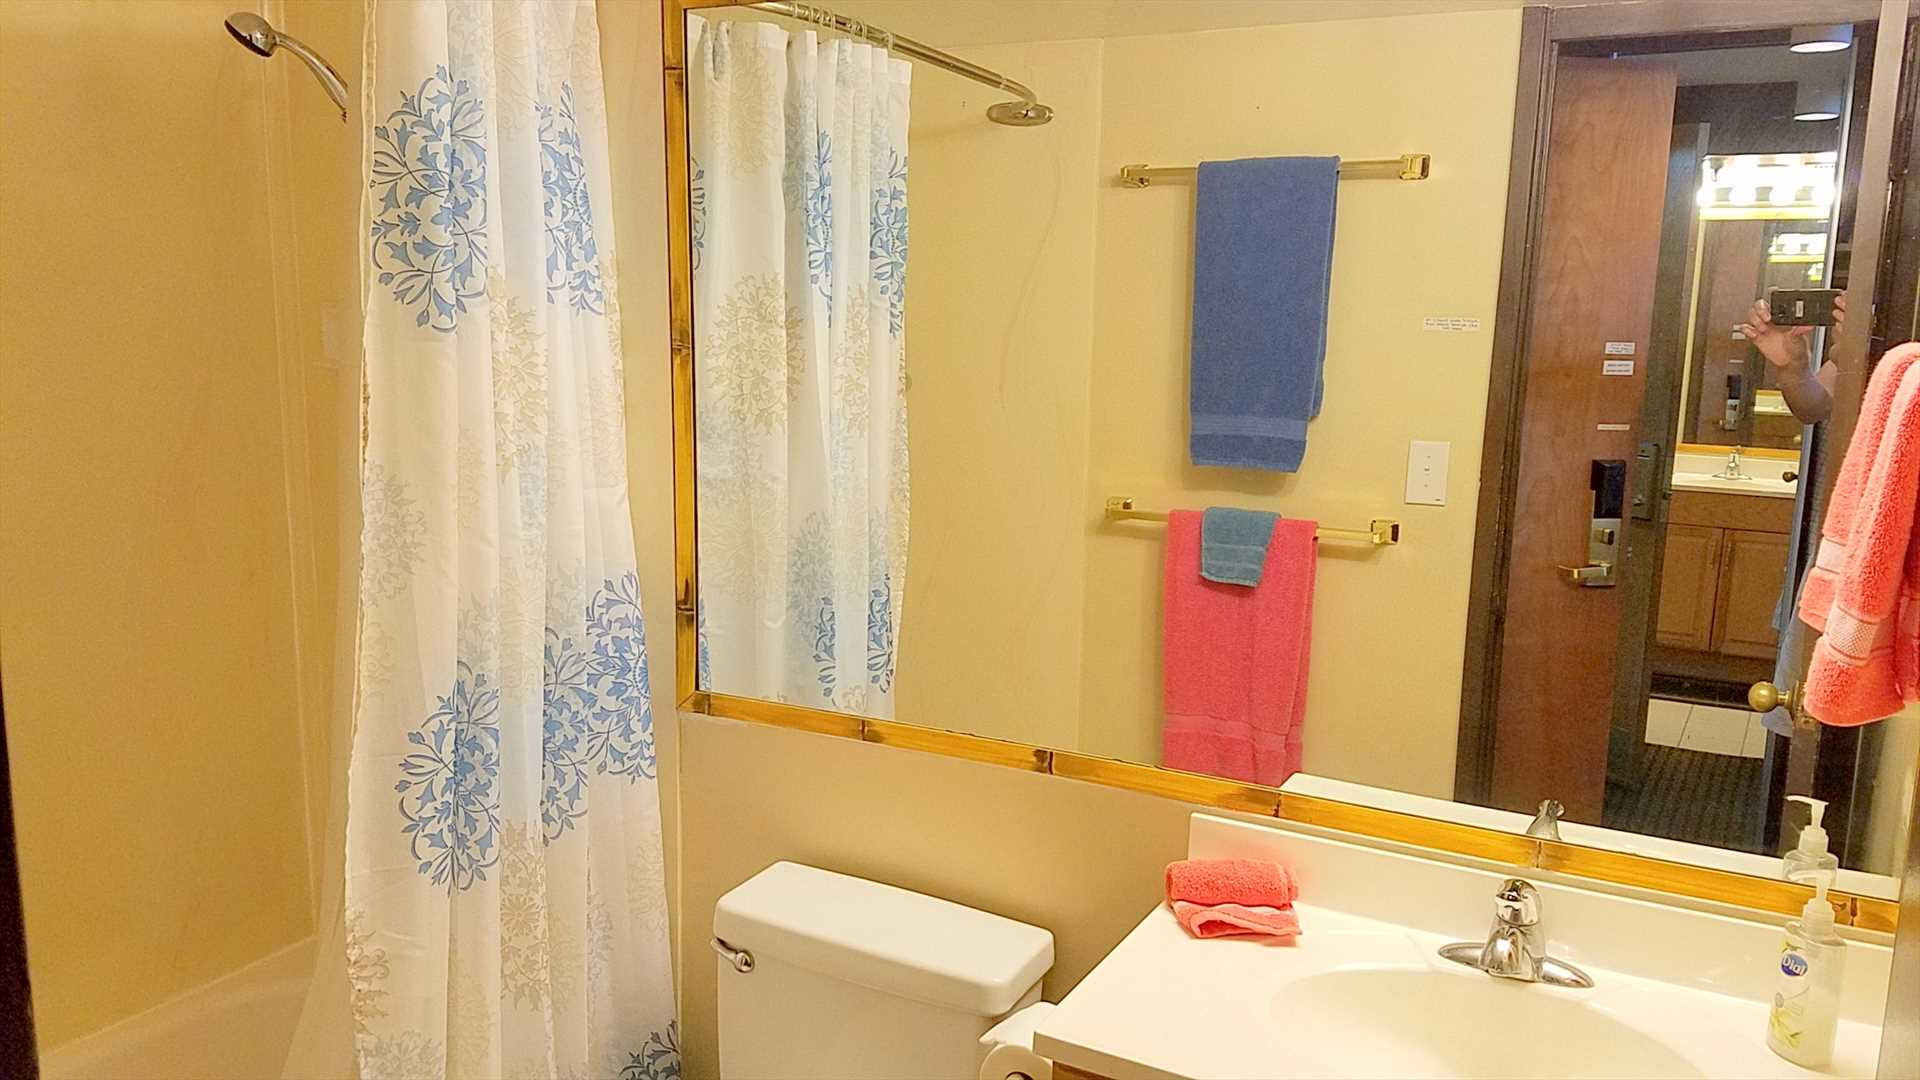 The bathroom includes a full-size tub/shower and hair dryer.